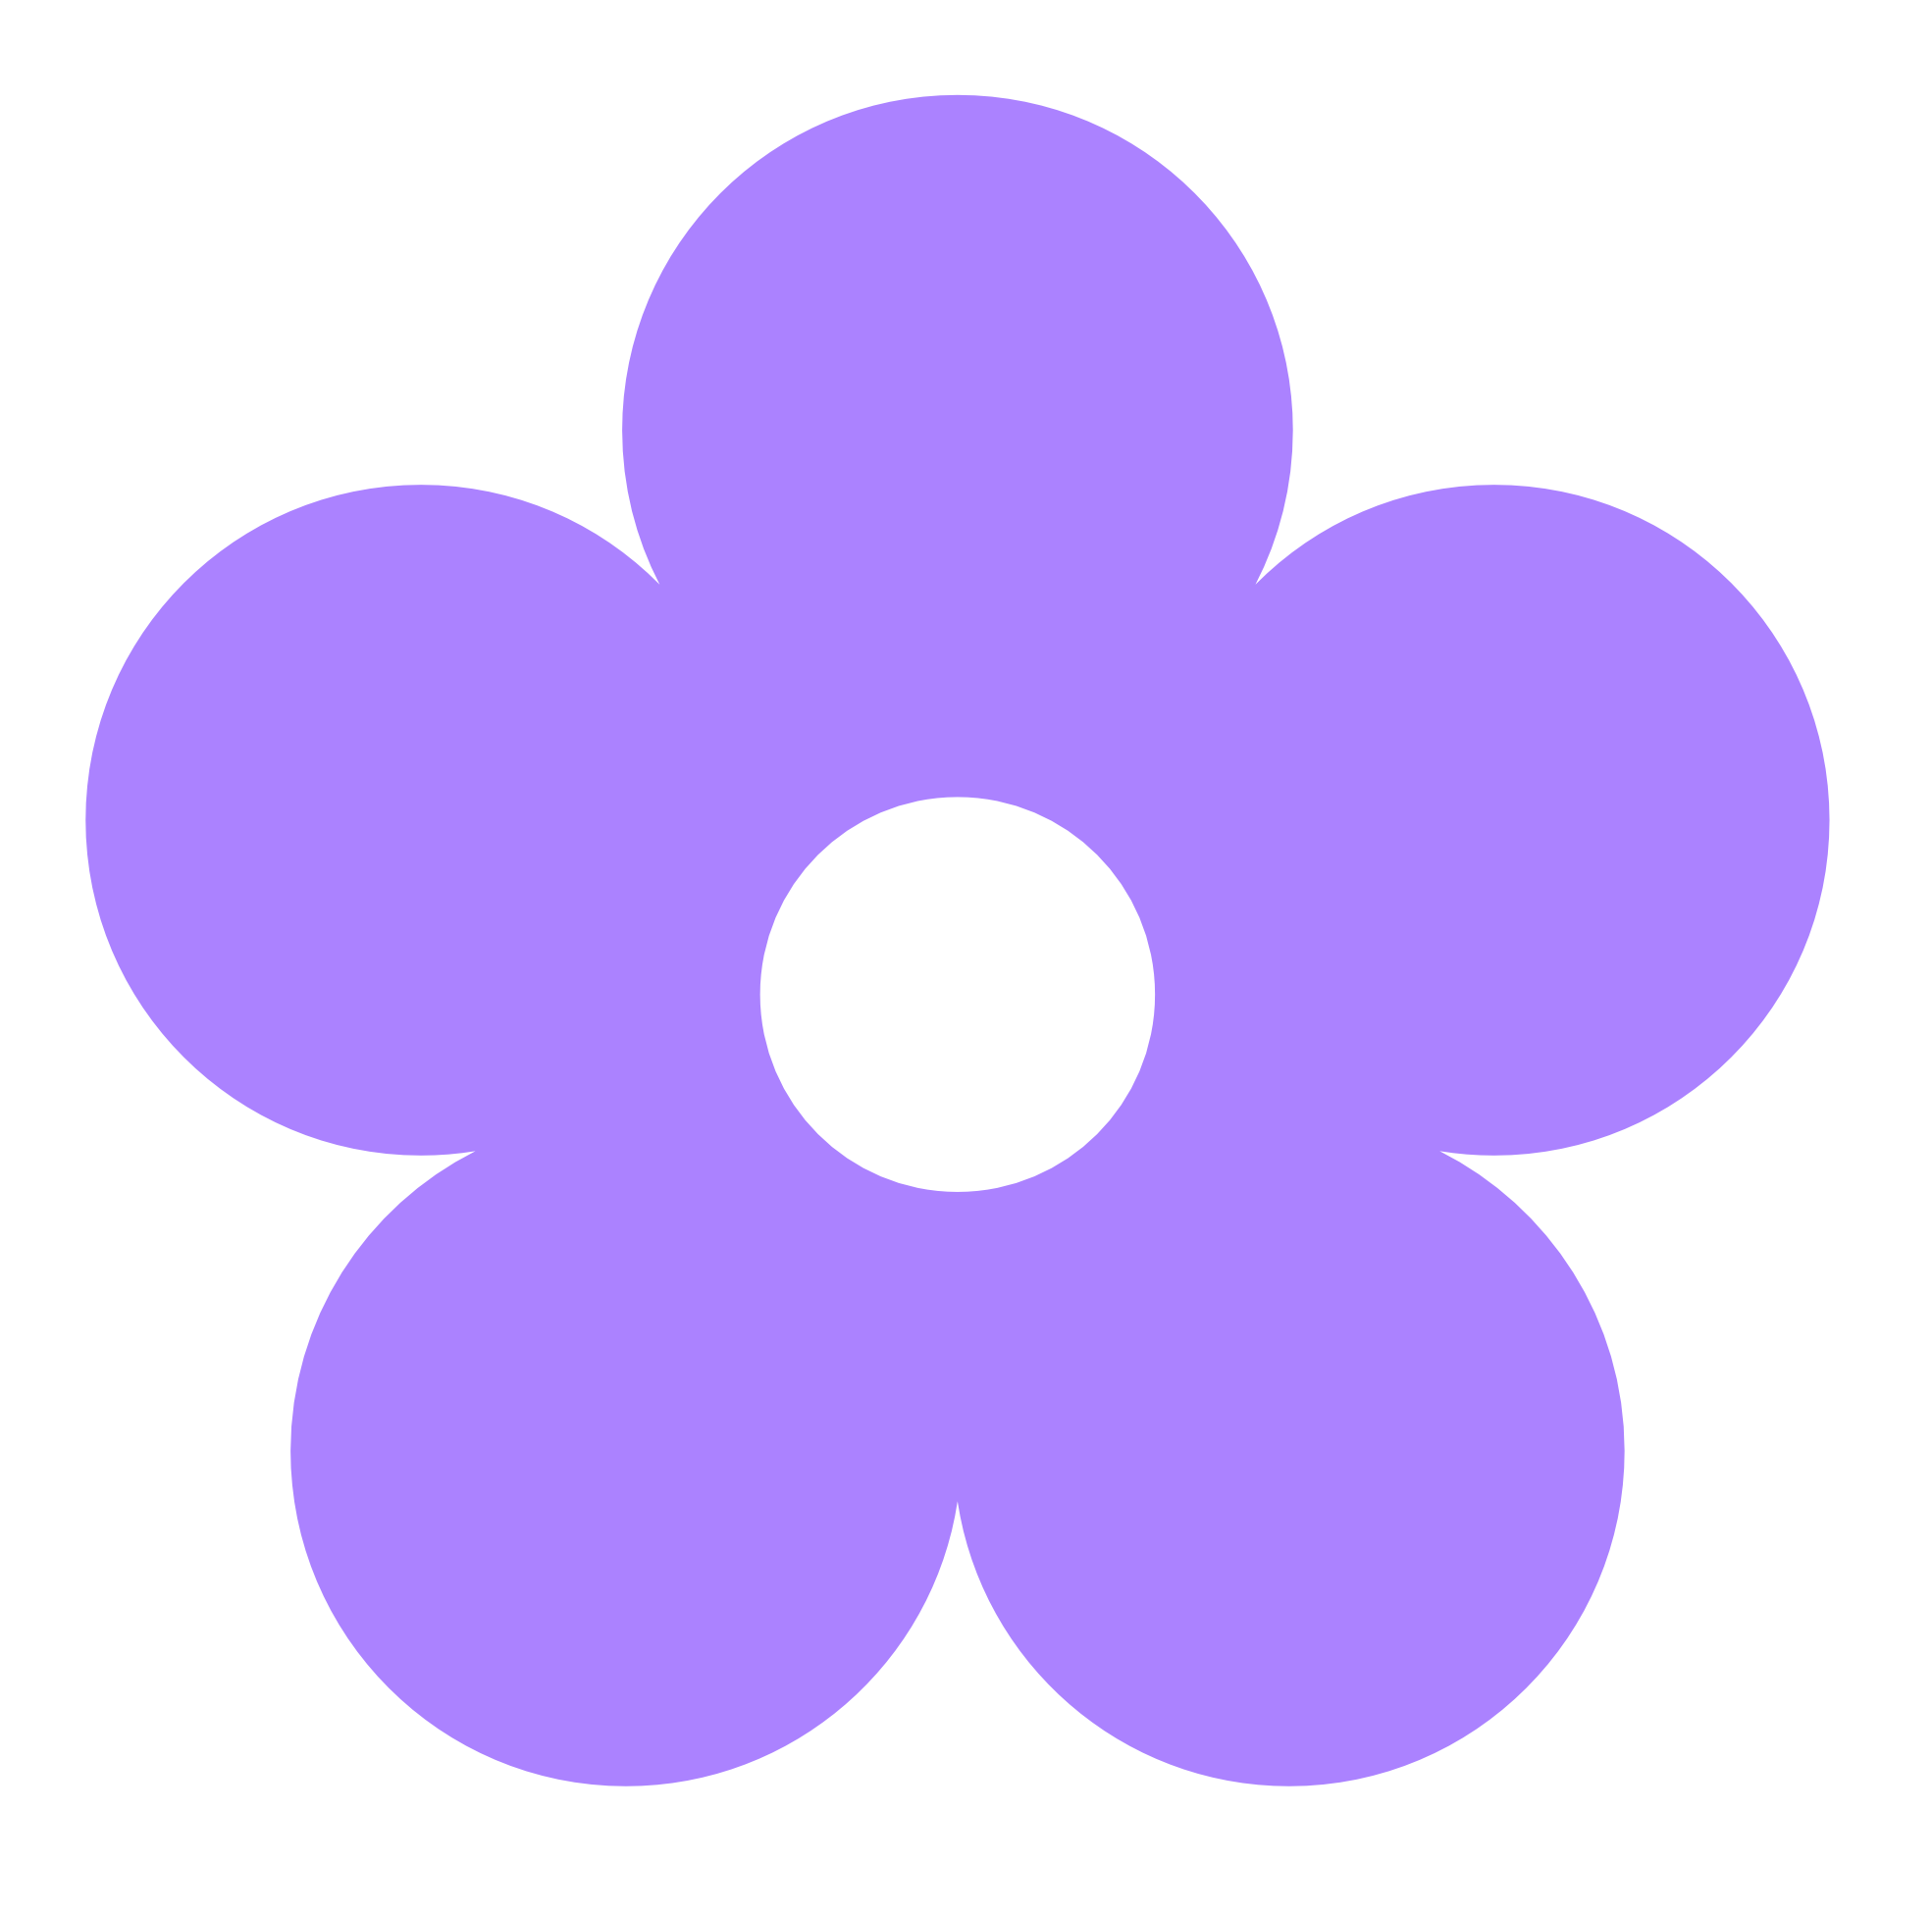 Blue snowflake clipart transparent background svg freeuse download Flowers purple flower clip art free clipart images - Clipartix svg freeuse download